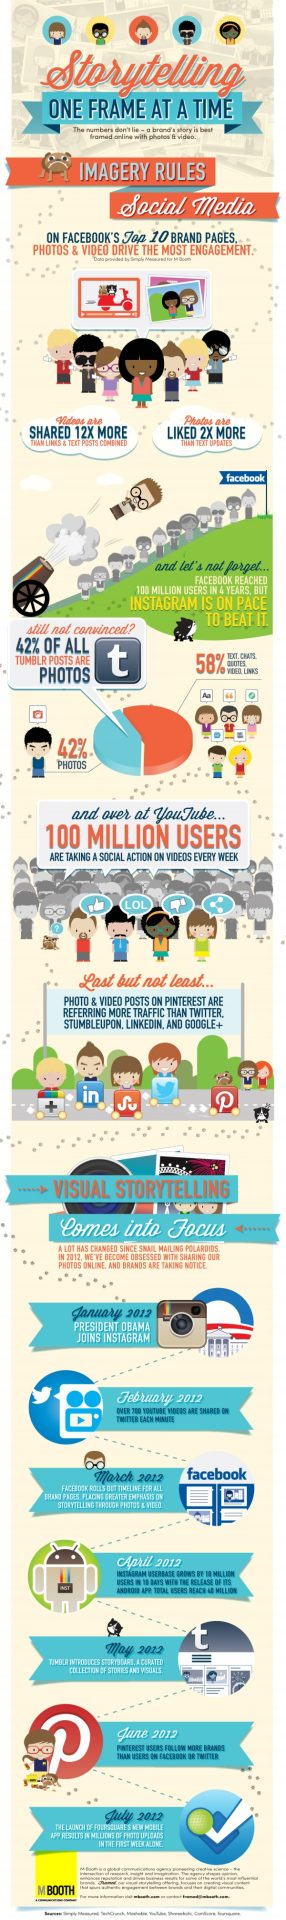 Photos And Videos Are Best Storytelling Devices For Social Media [Infographic]